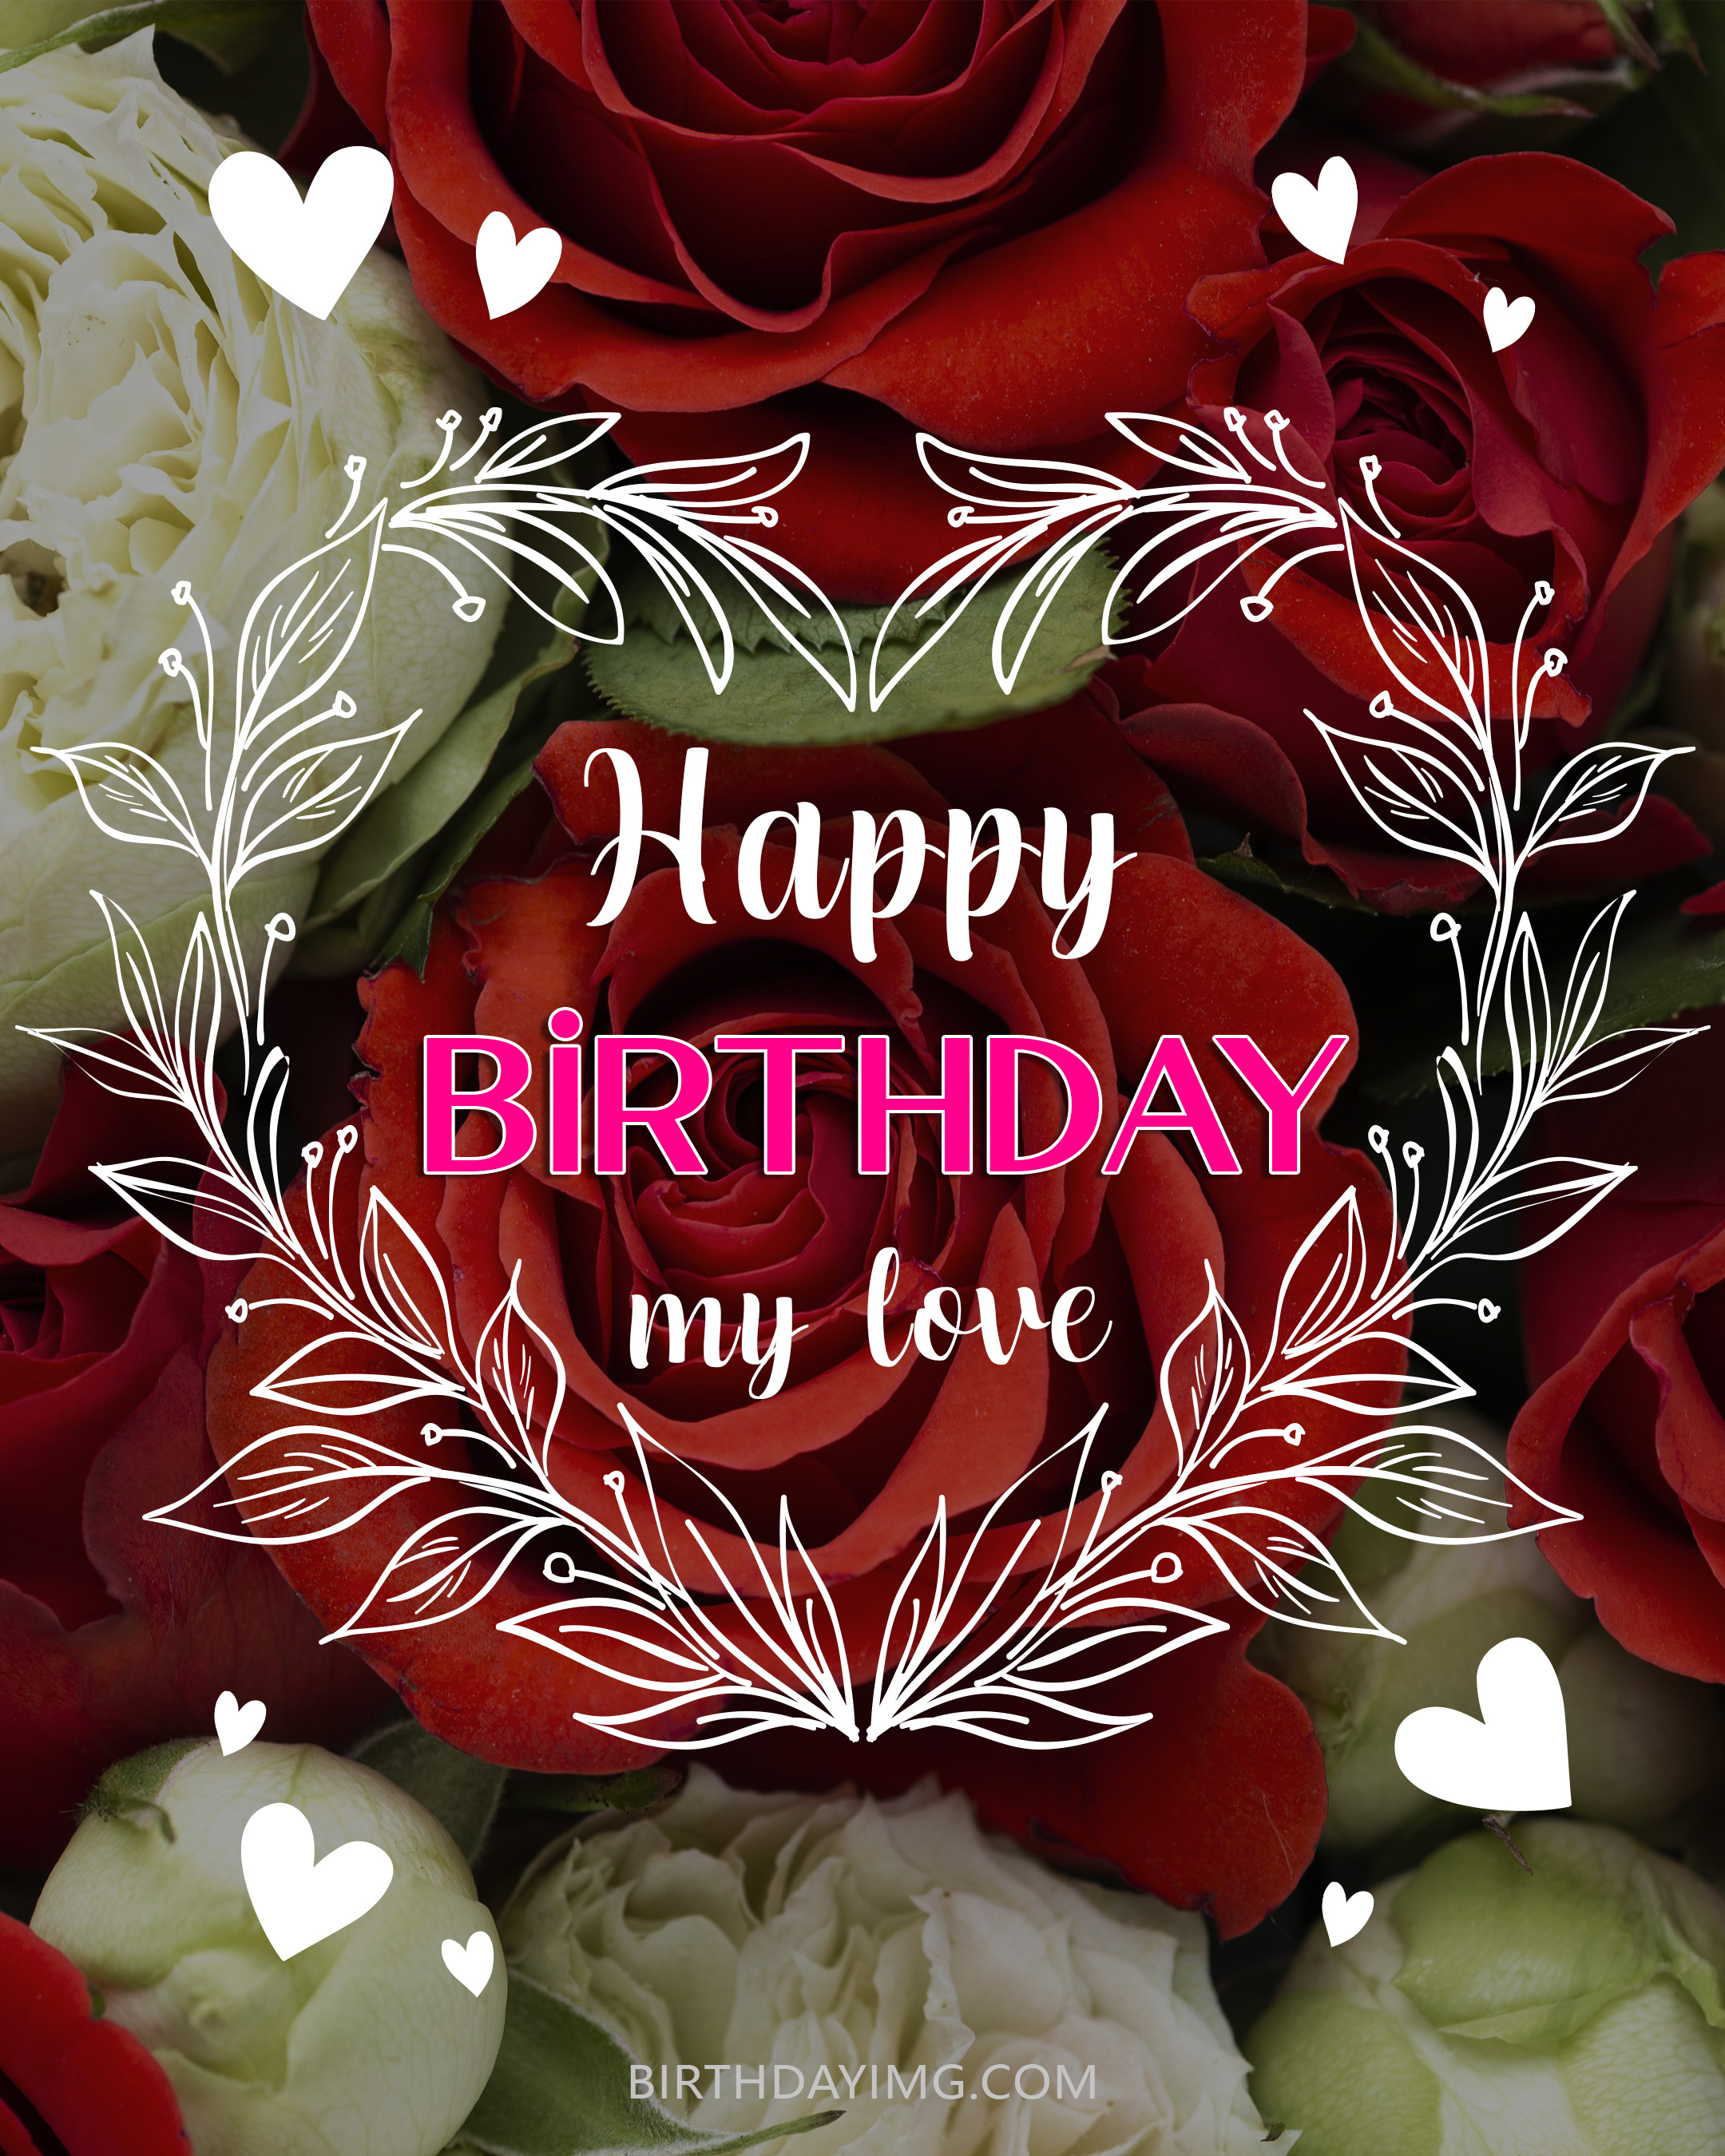 Free Happy Birthday Image With Love and Red Roses - birthdayimg.com